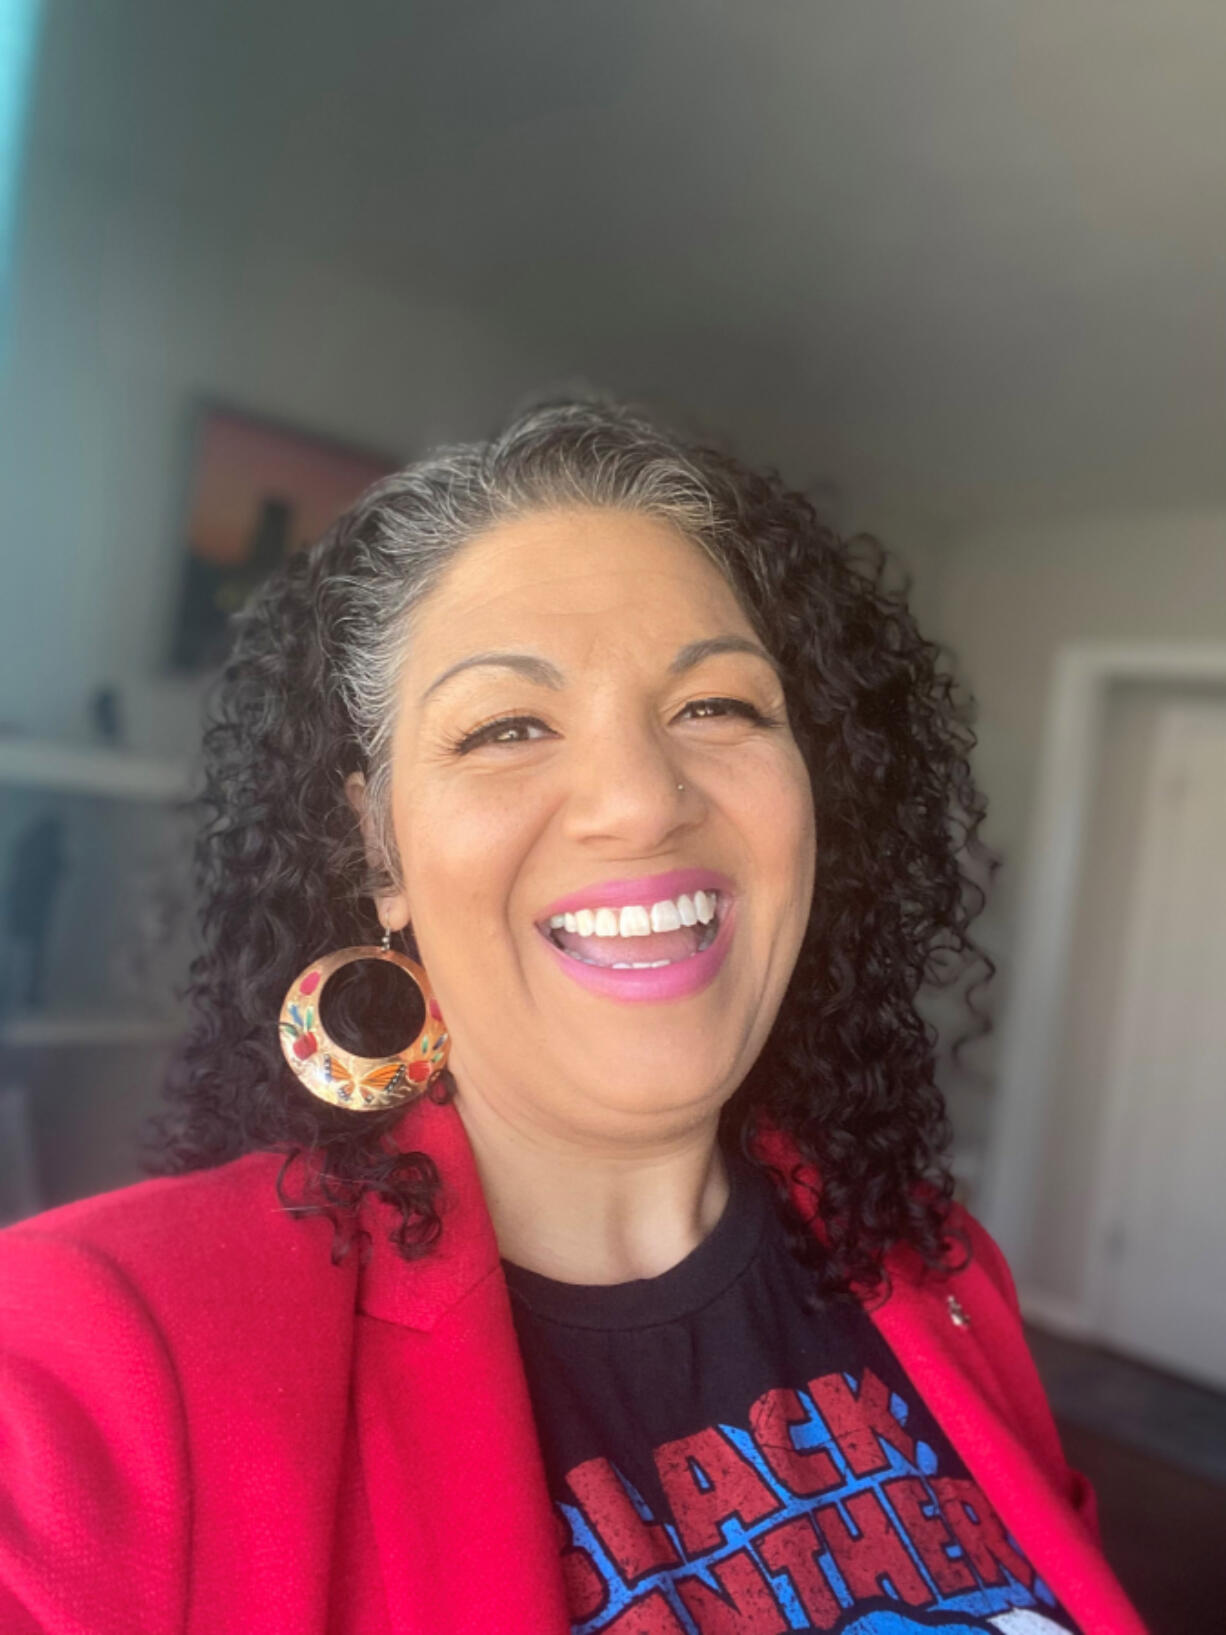 Alicia Sojourner started as Vancouver's director of diversity, equity and inclusion on March 1.